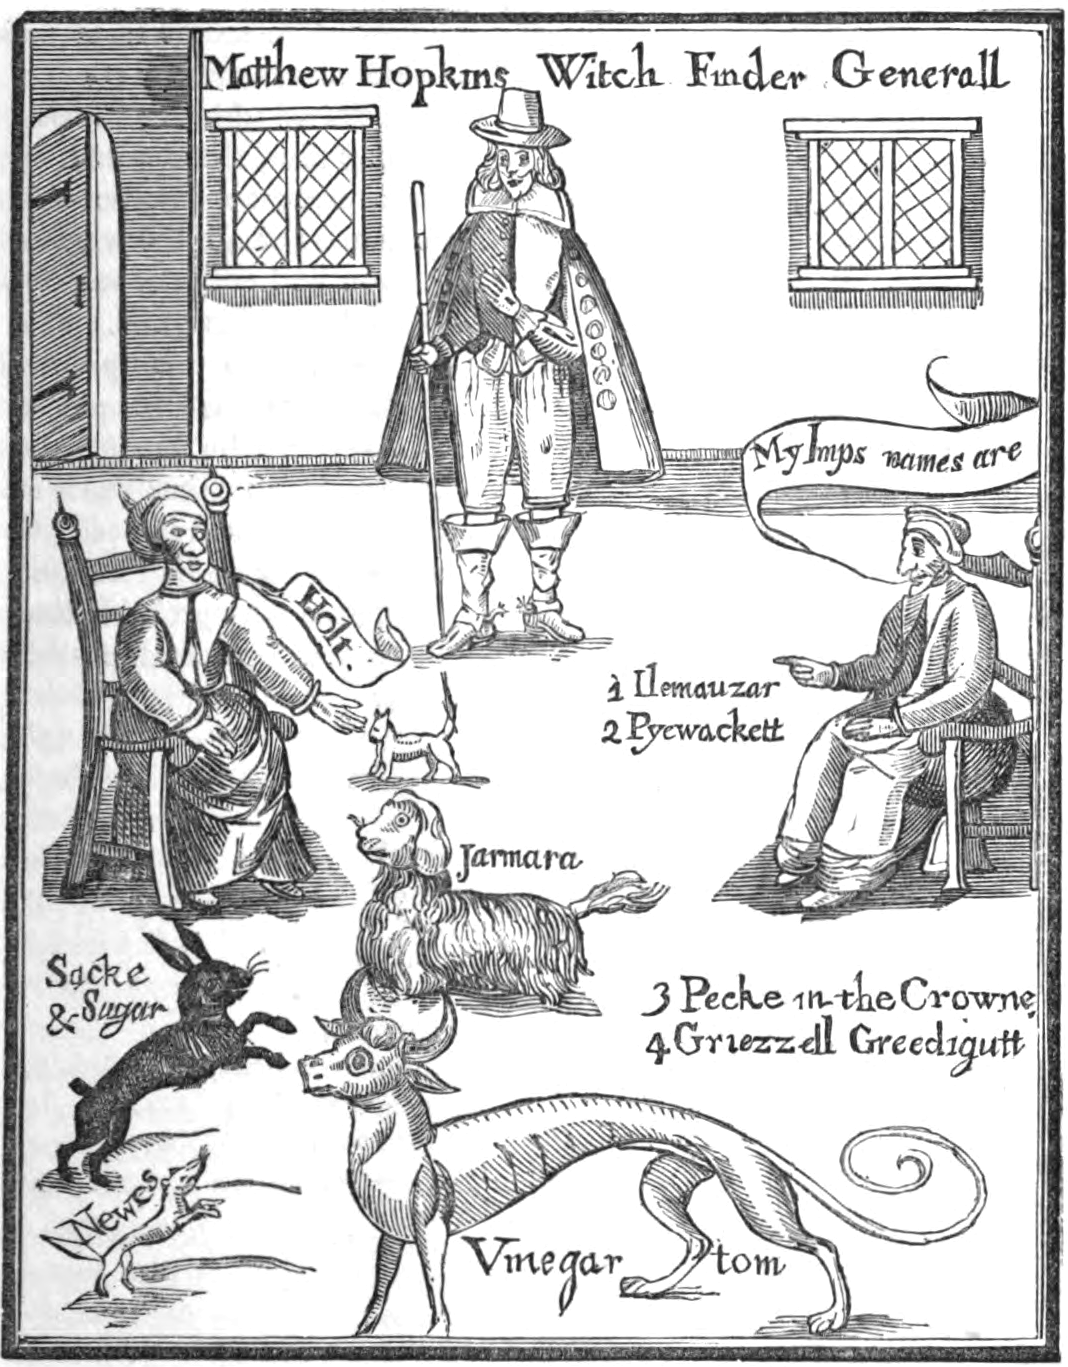 Frontispiece from Matthew Hopkins' The Discovery of Witches (1647)